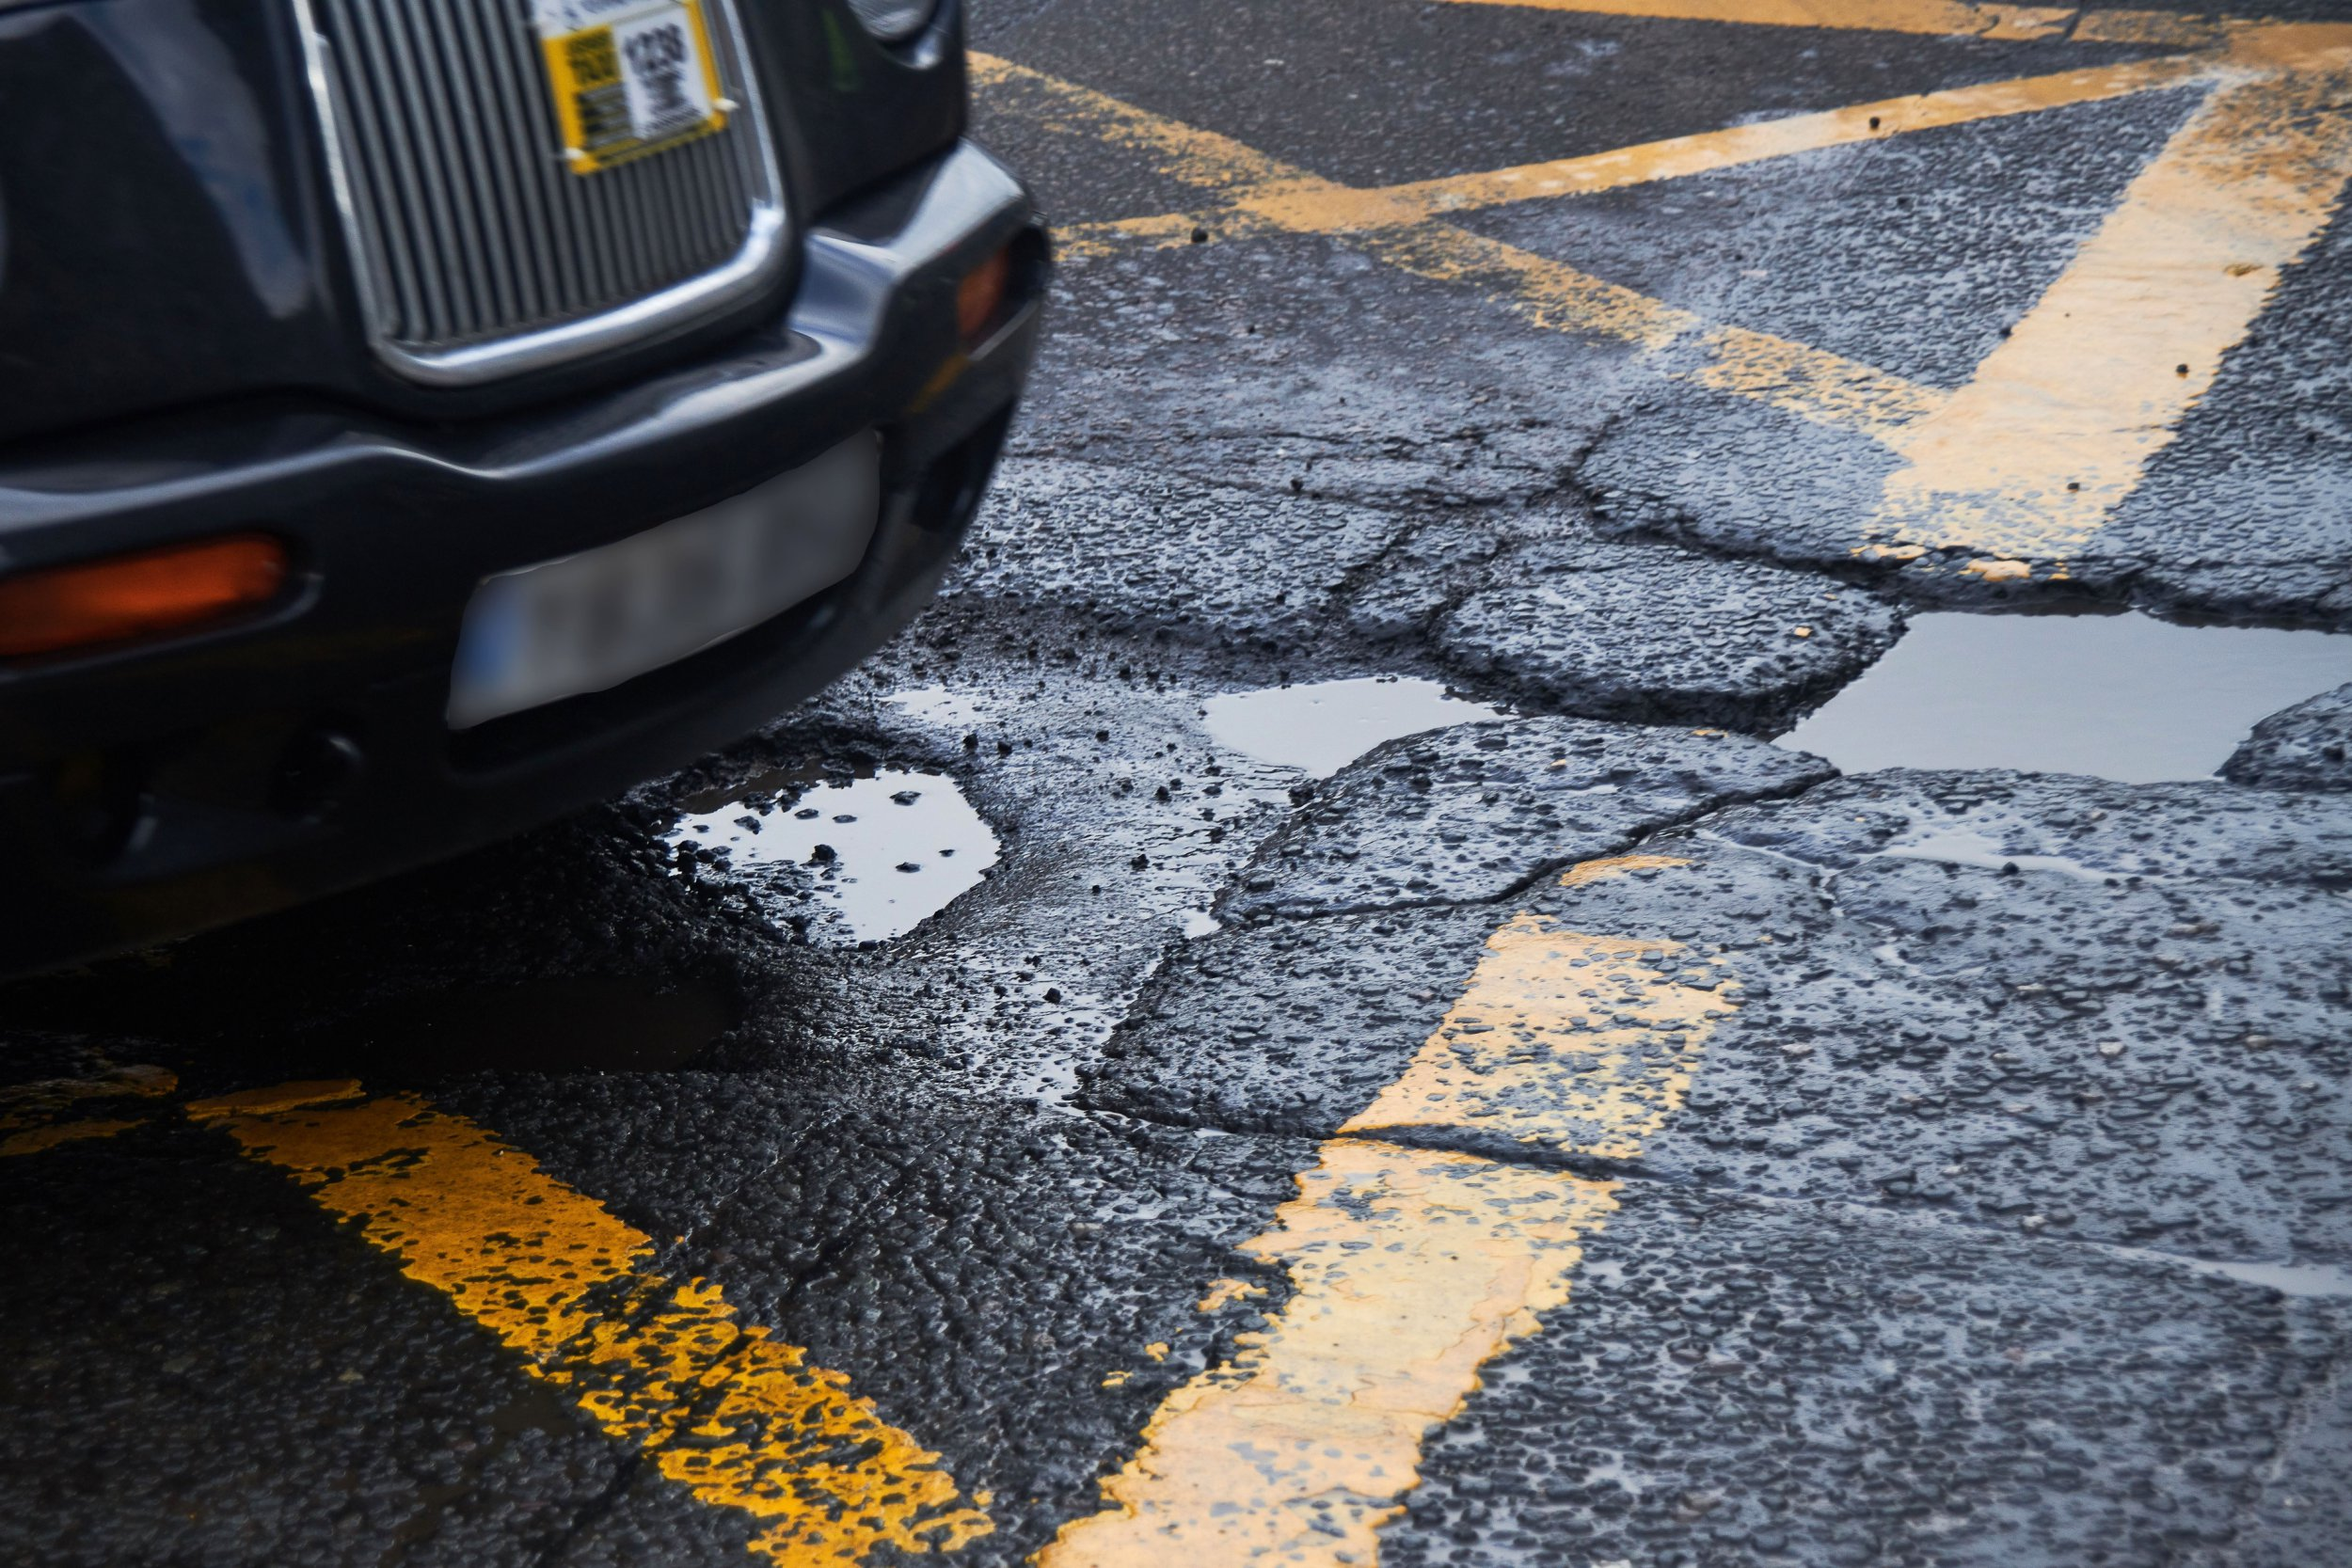 Mandatory Credit: Photo by Brian Anderson/REX/Shutterstock (9453107l) Pot hole Pot hole problem in Edinburgh, Scotland, UK - 09 Mar 2018 As the recent snow and ice recede the under funded road network shows the strain as serious pot holes appear making it unsafe for road users.